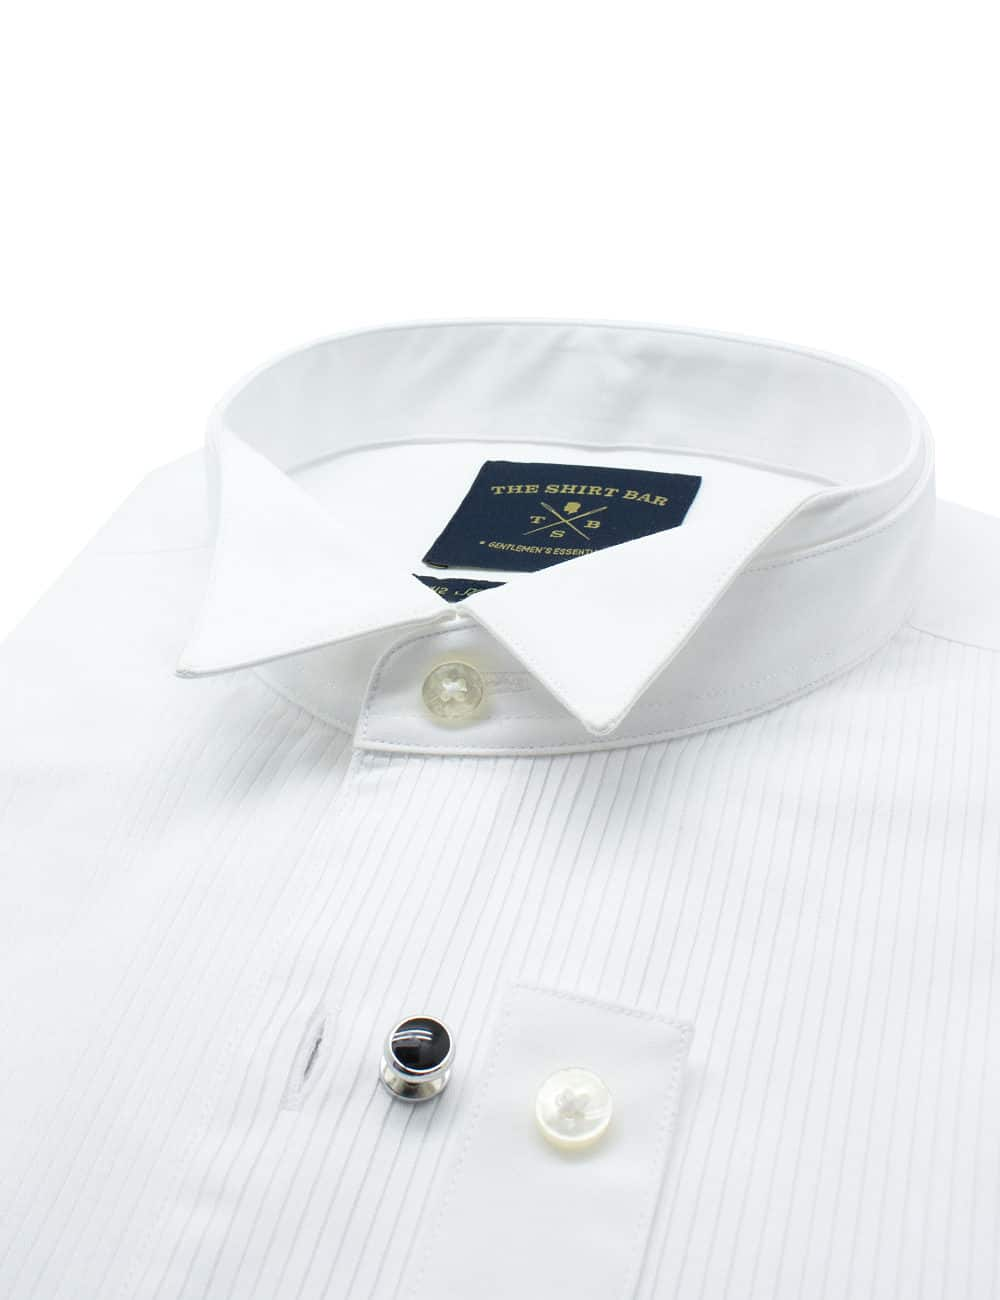 Slim Fit 100% Premium Cotton Solid White Changeable Mandarin Collar Long Sleeve Double Cuff Tuxedo Shirt with Pleated Front Bib and Button Studs, Long Lasting White Finishing SF48DT1.NOS